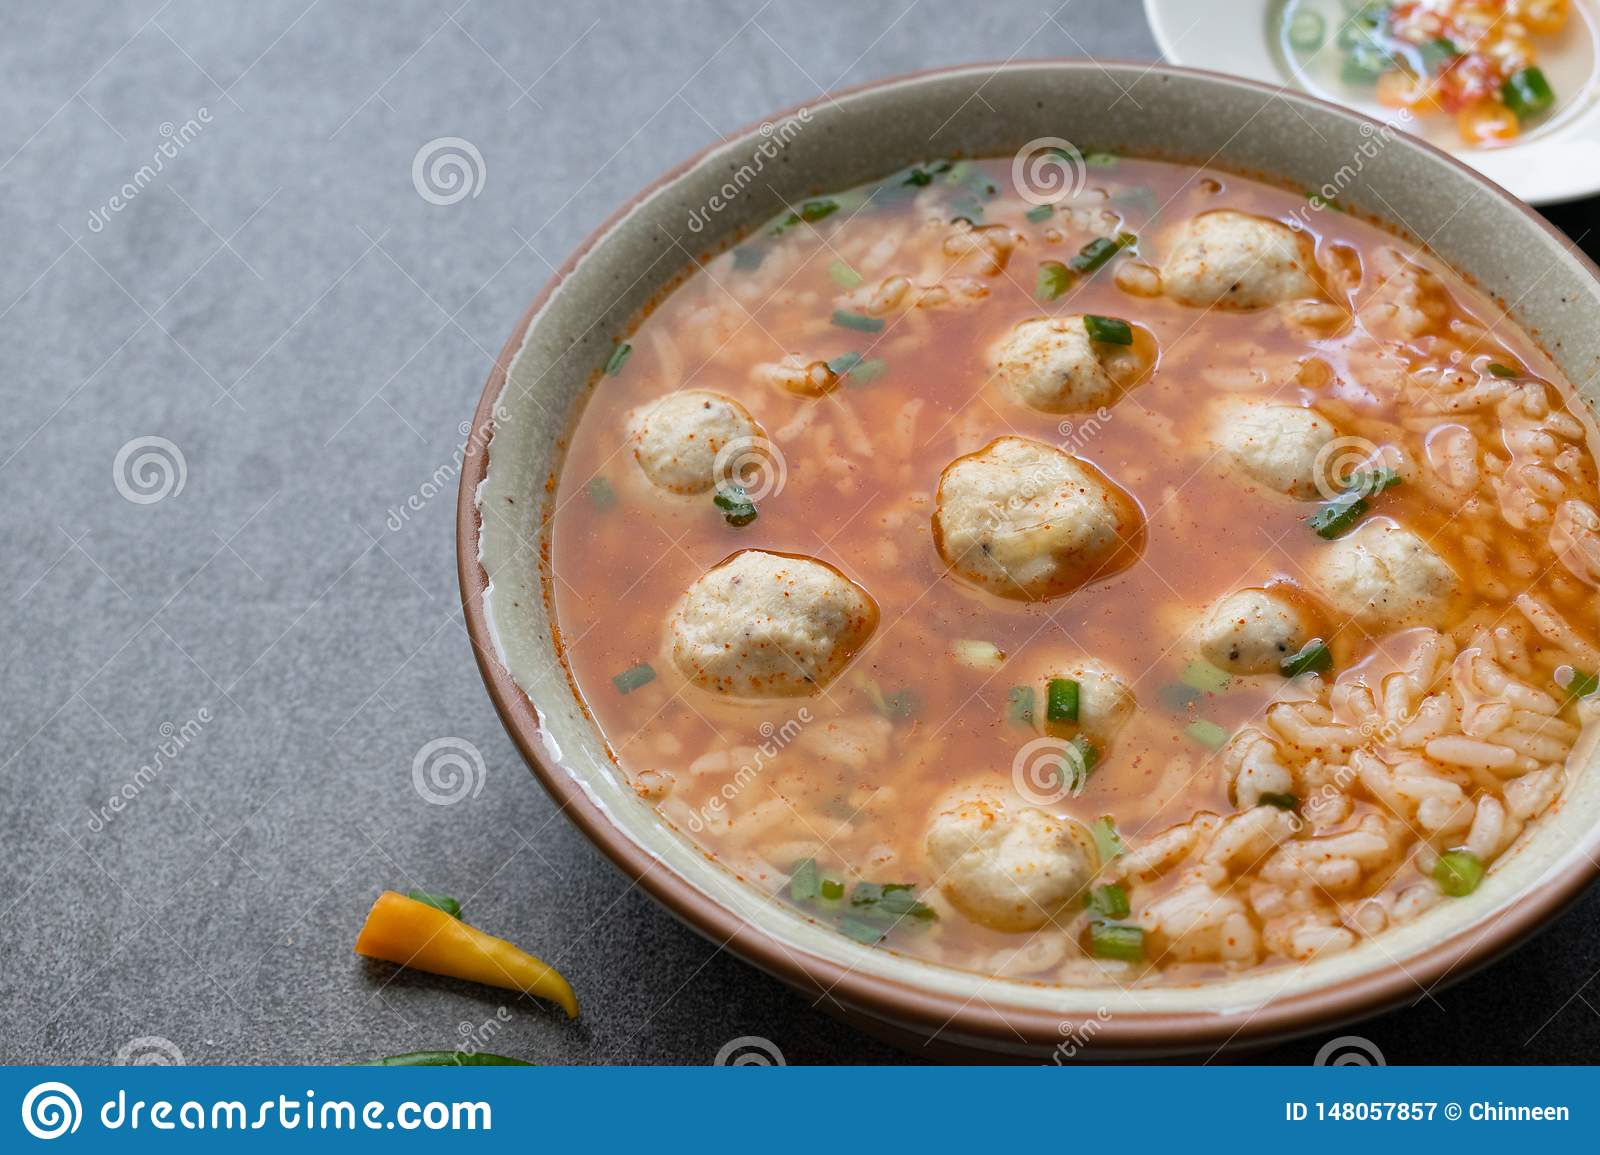 Rice spicy soup with chicken ball and chilli in gray bowl on table